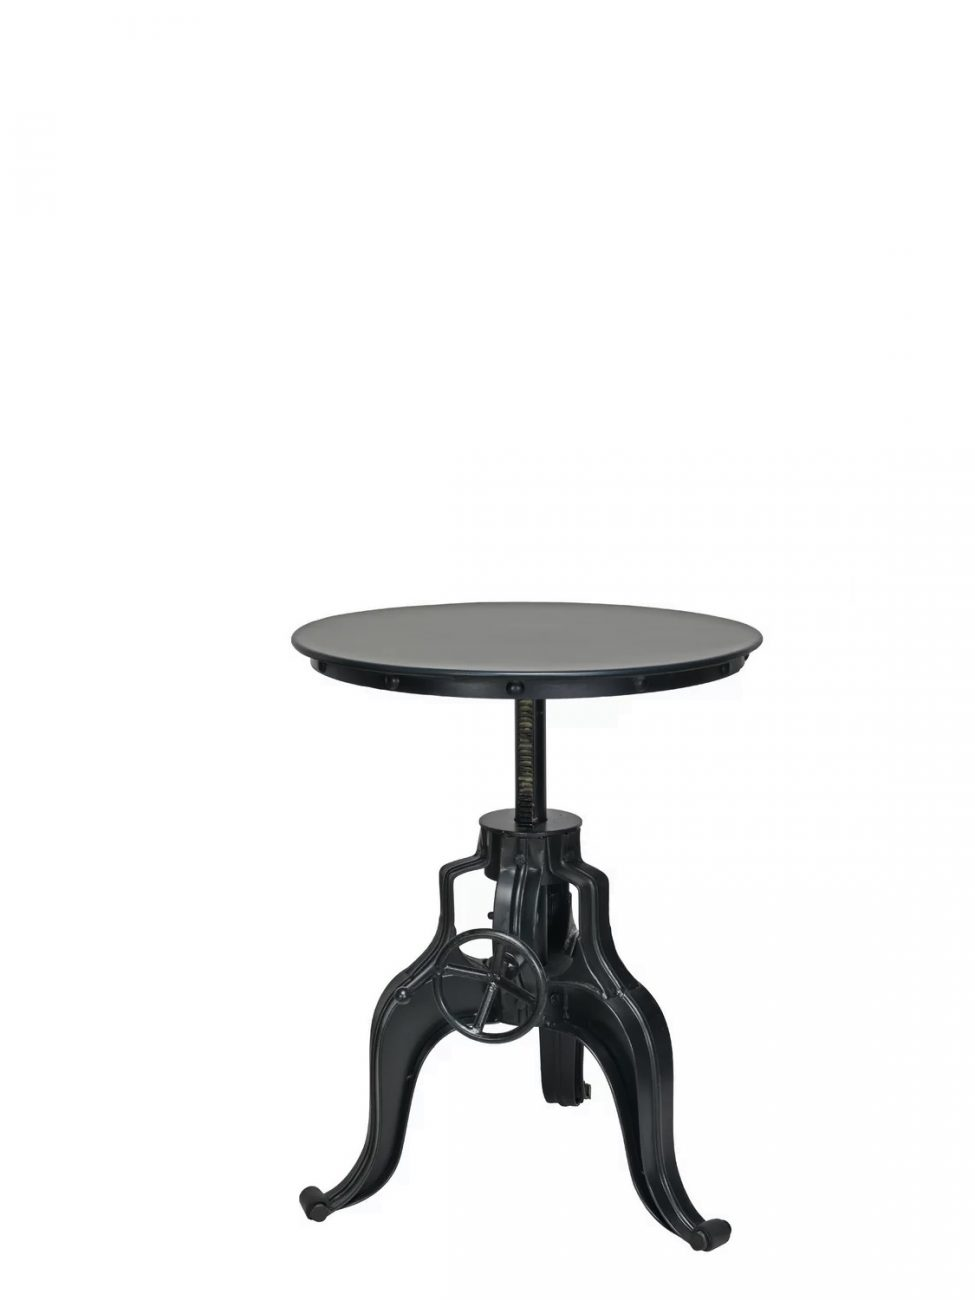 Crank Table 2 (Black)